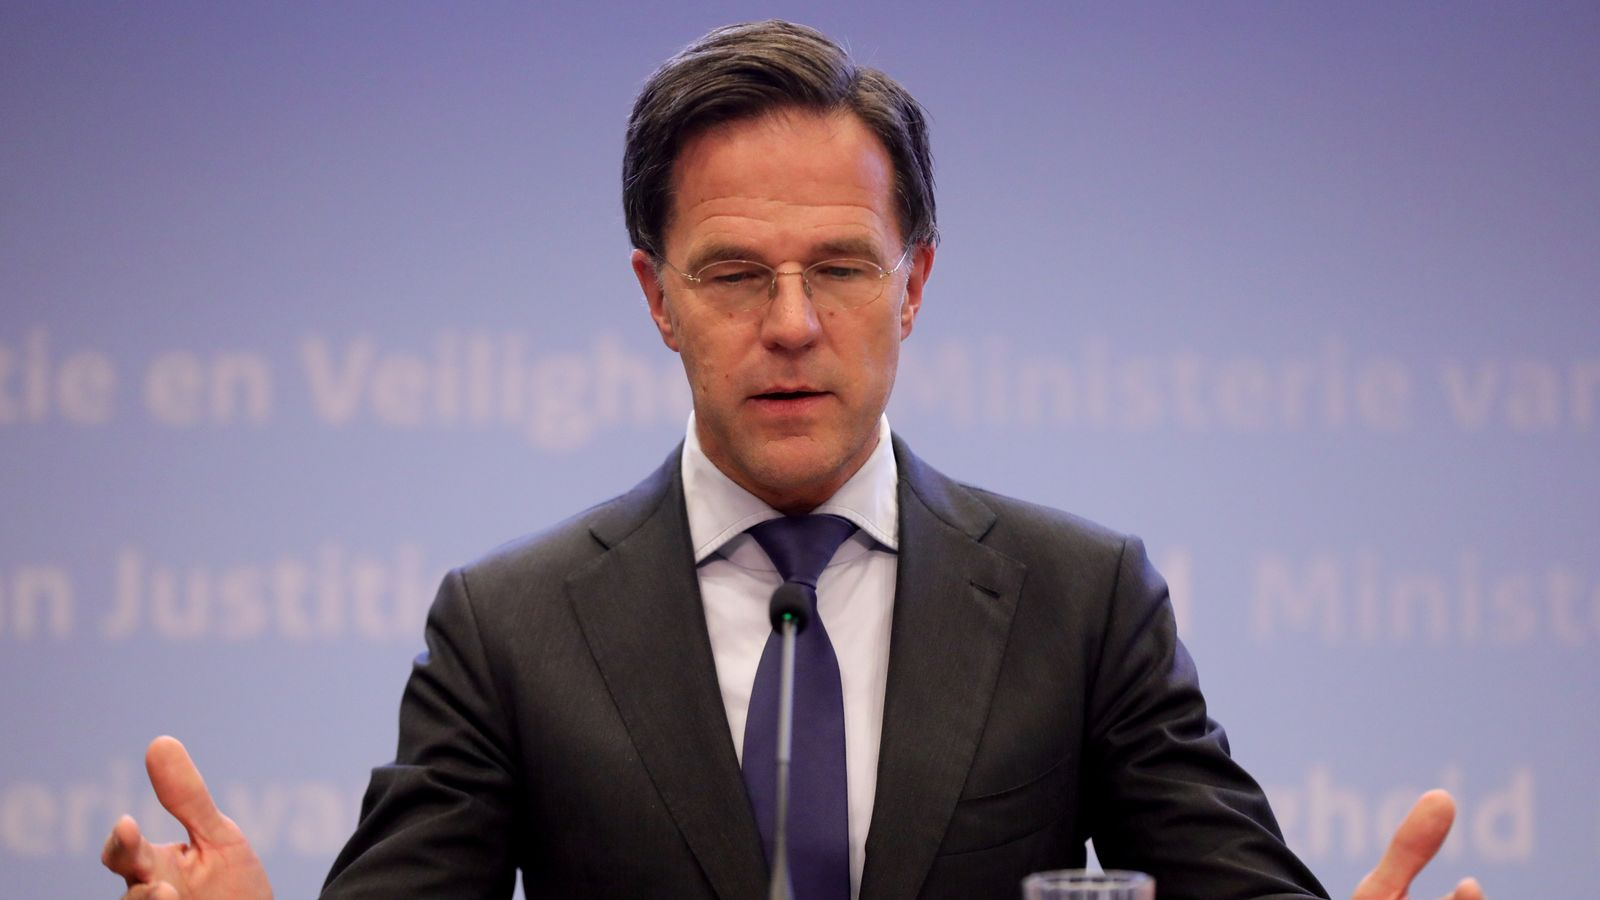 Dutch PM didn't see dying mother due to coronavirus restrictions - EpicNews